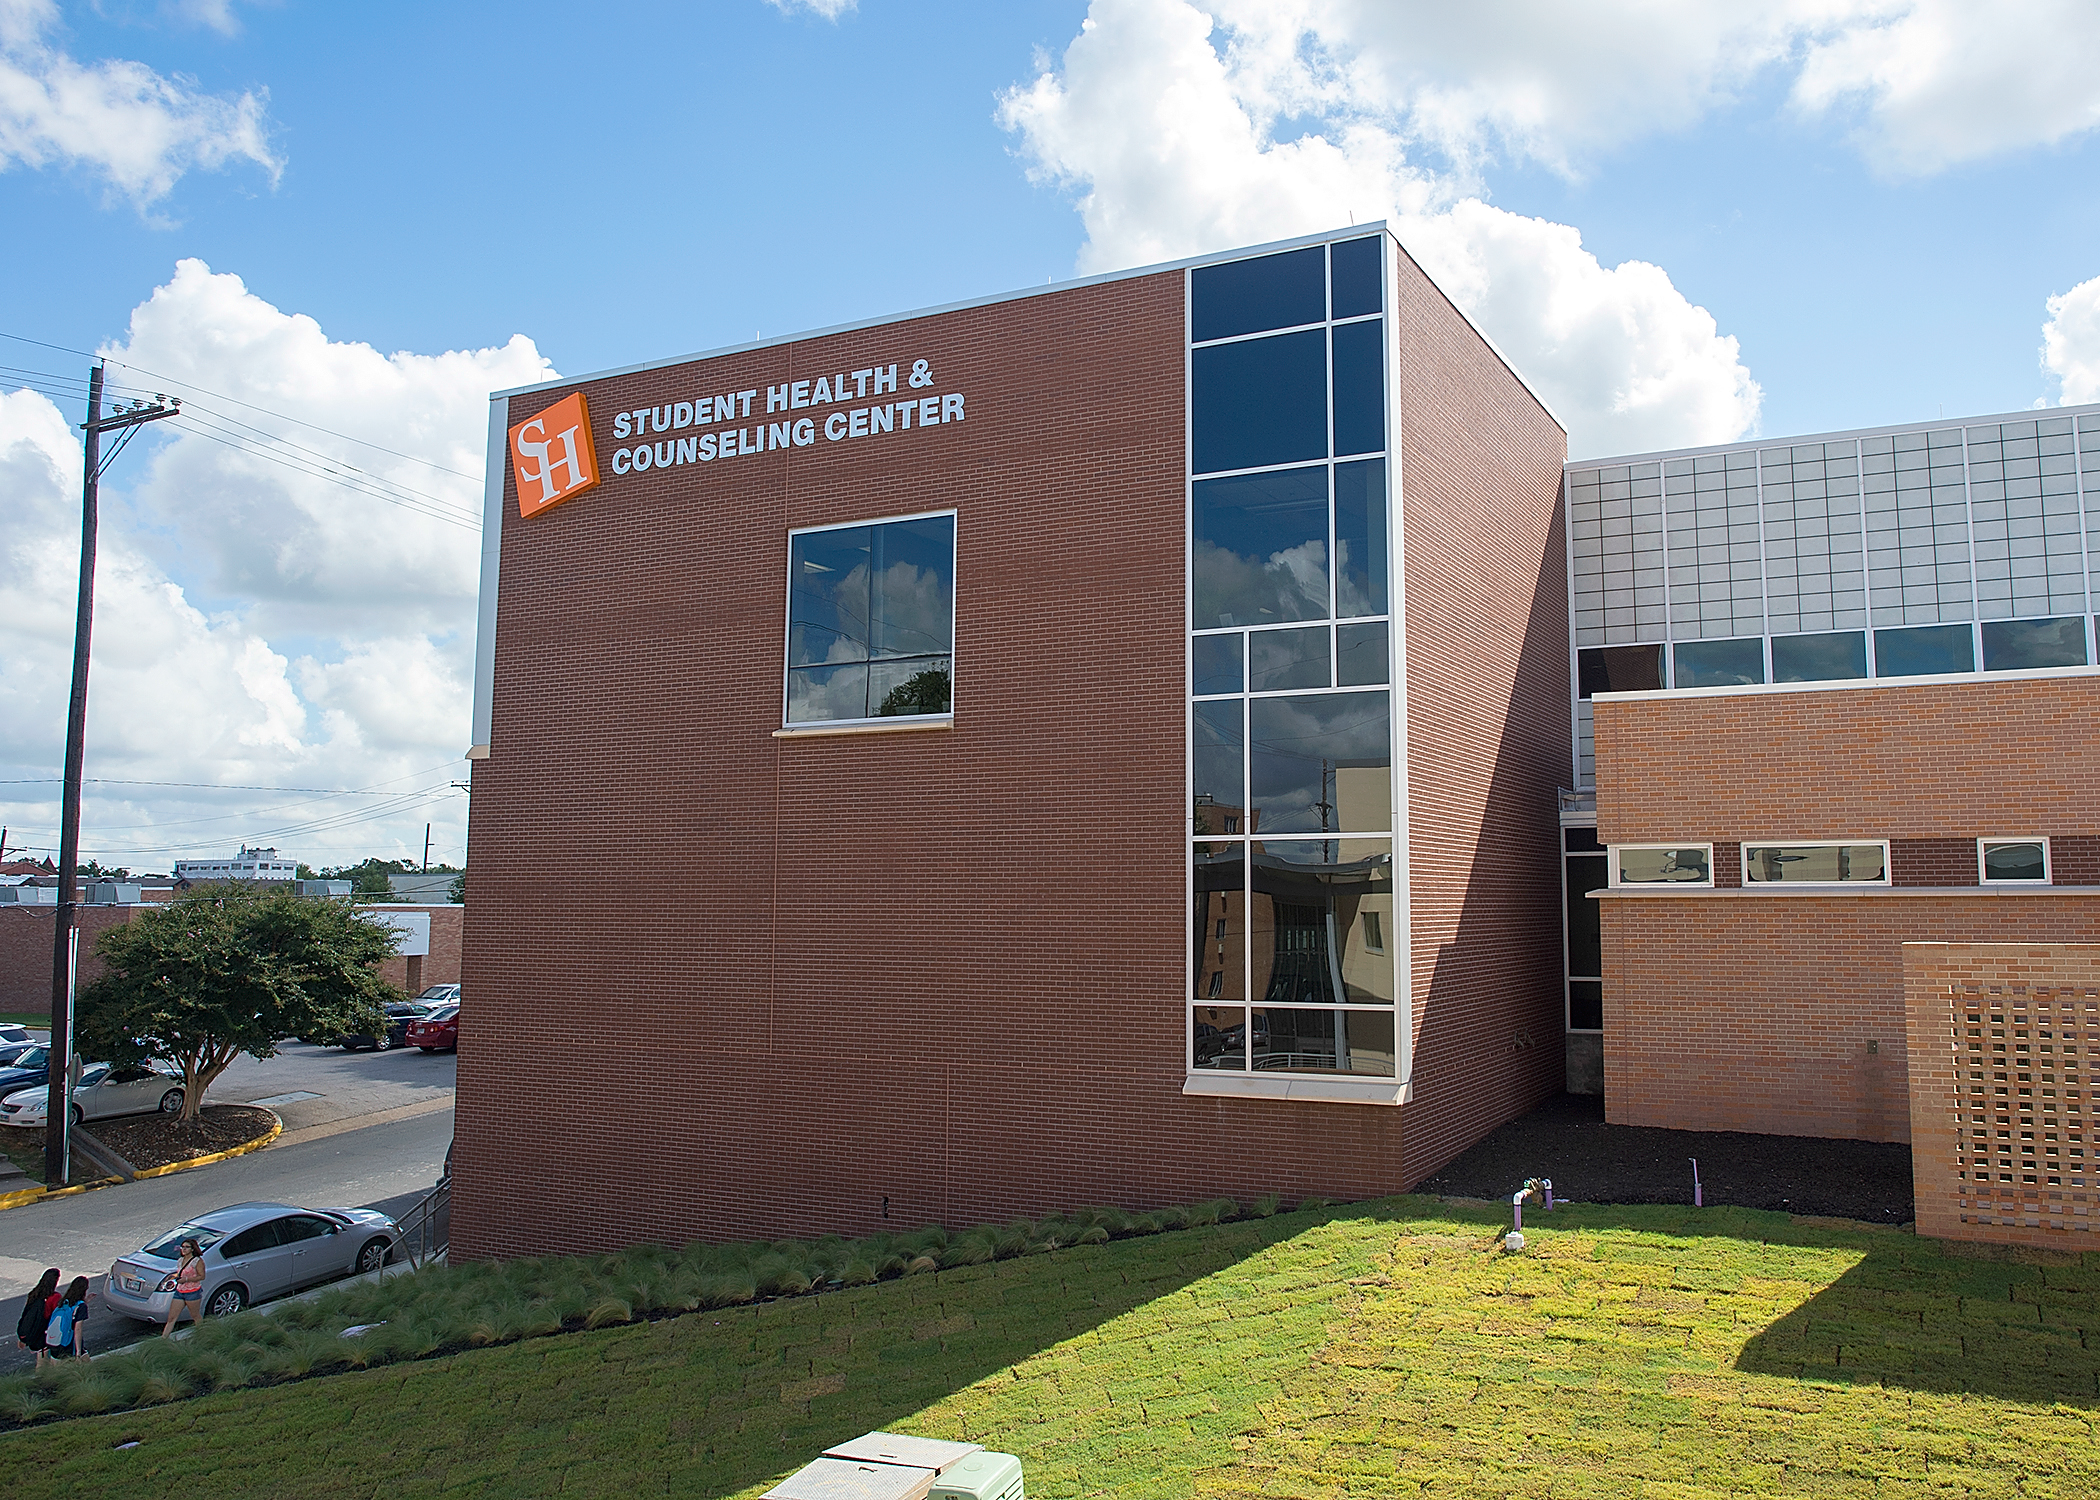 Student Health & Counseling Center Exterior